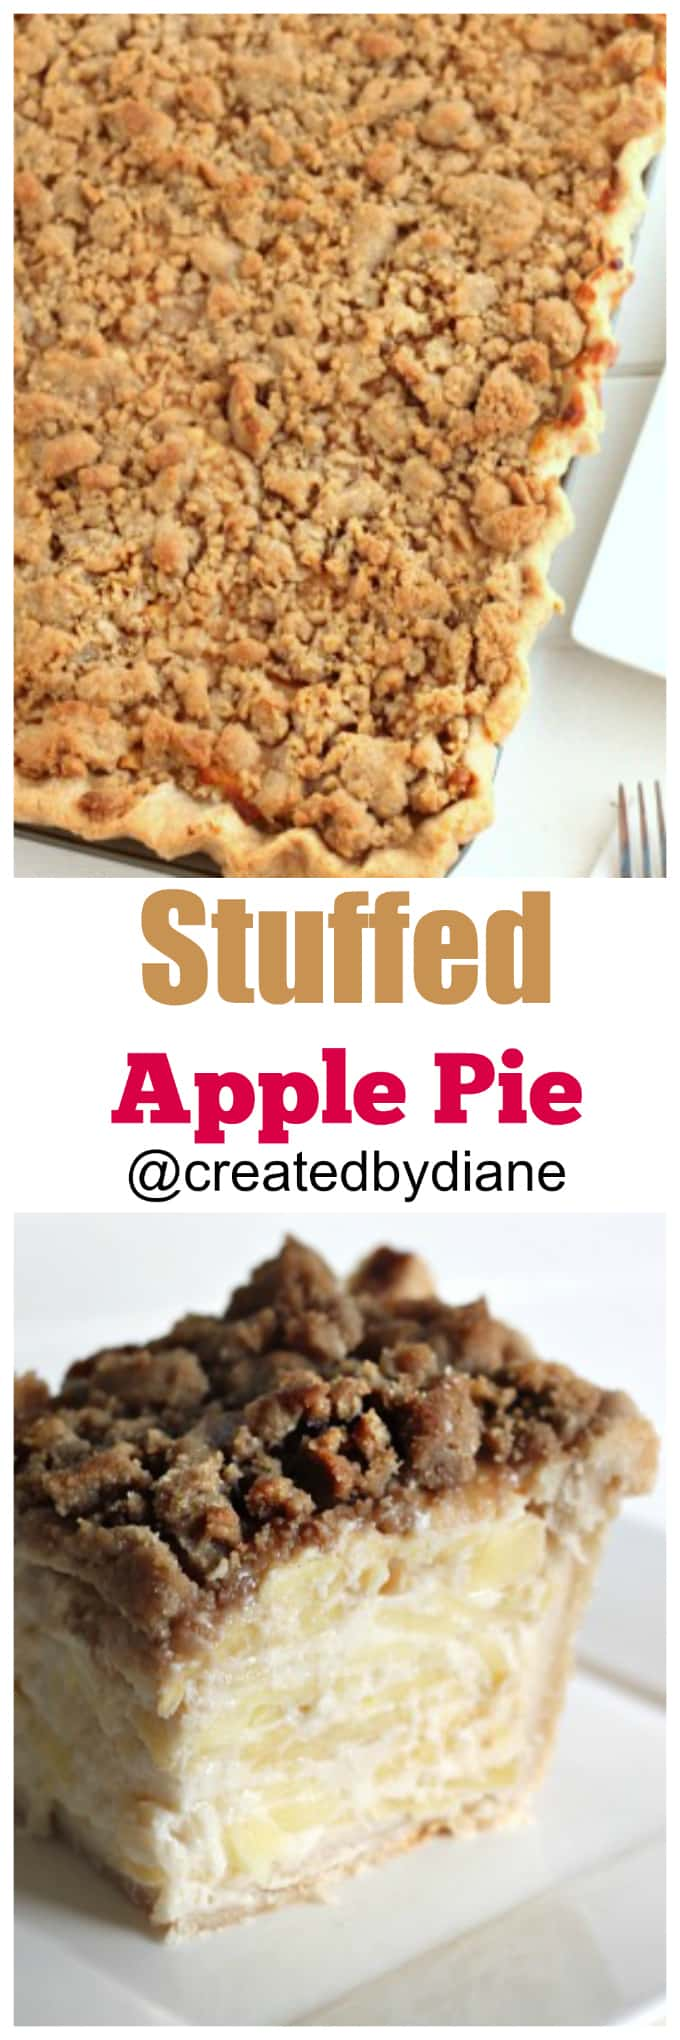 stuffed-apple-pie-recipe-from-createdbydiane